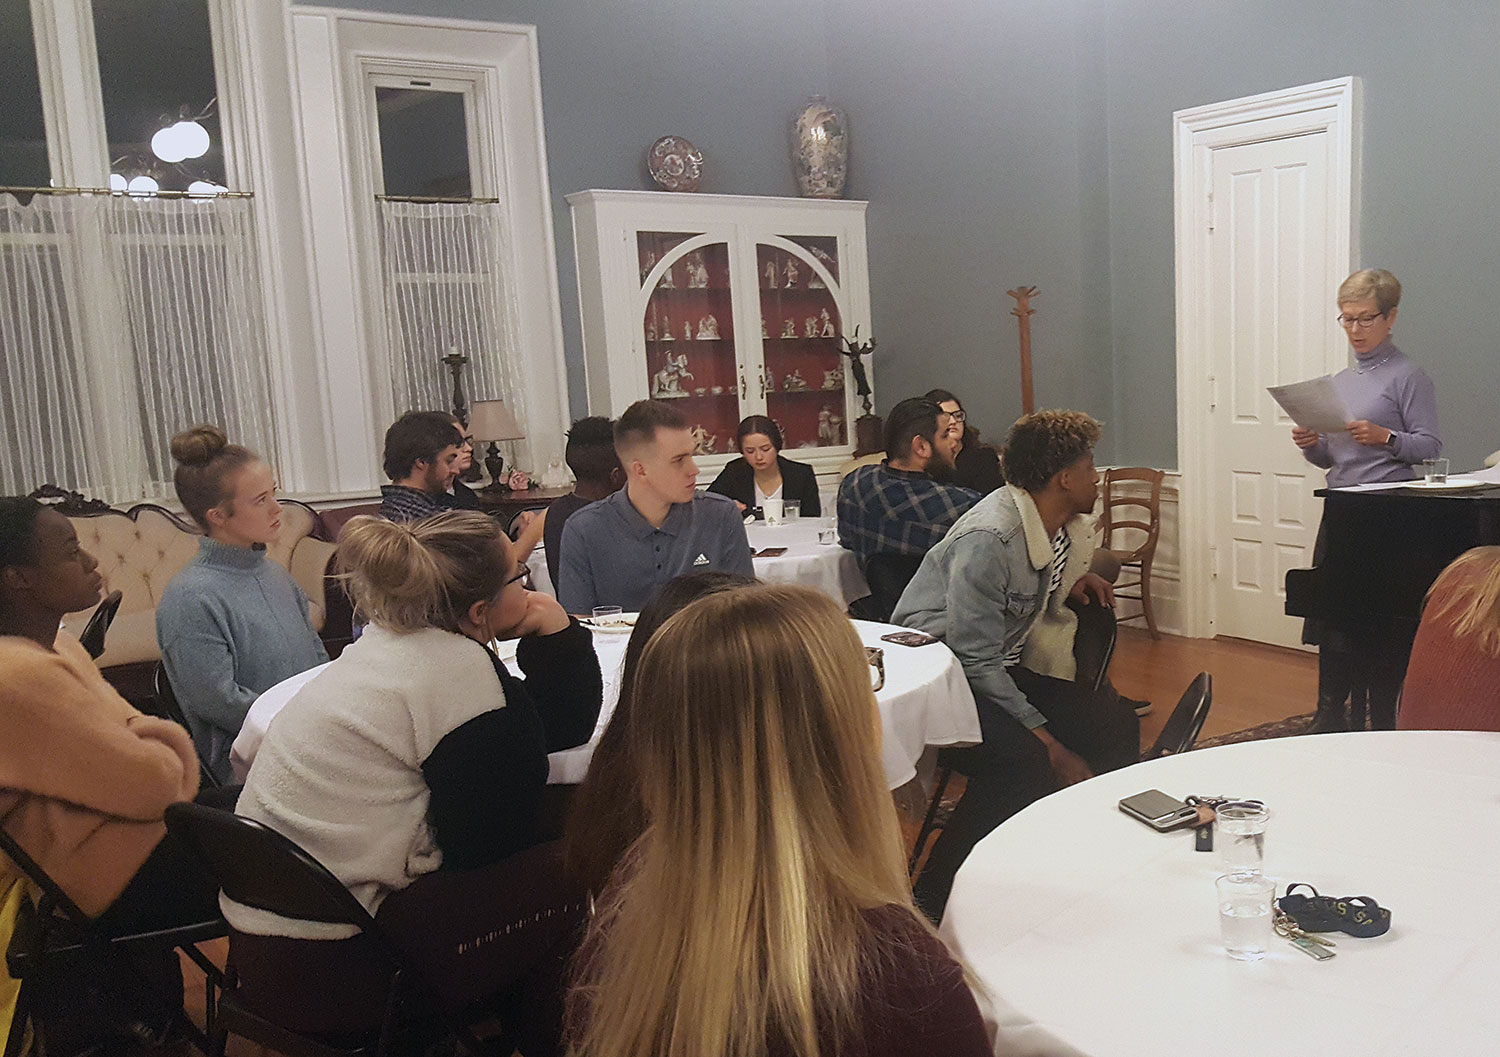 Ambassador Canavan speaks with students at the University of St. Mary on Dec. 3, 2019.